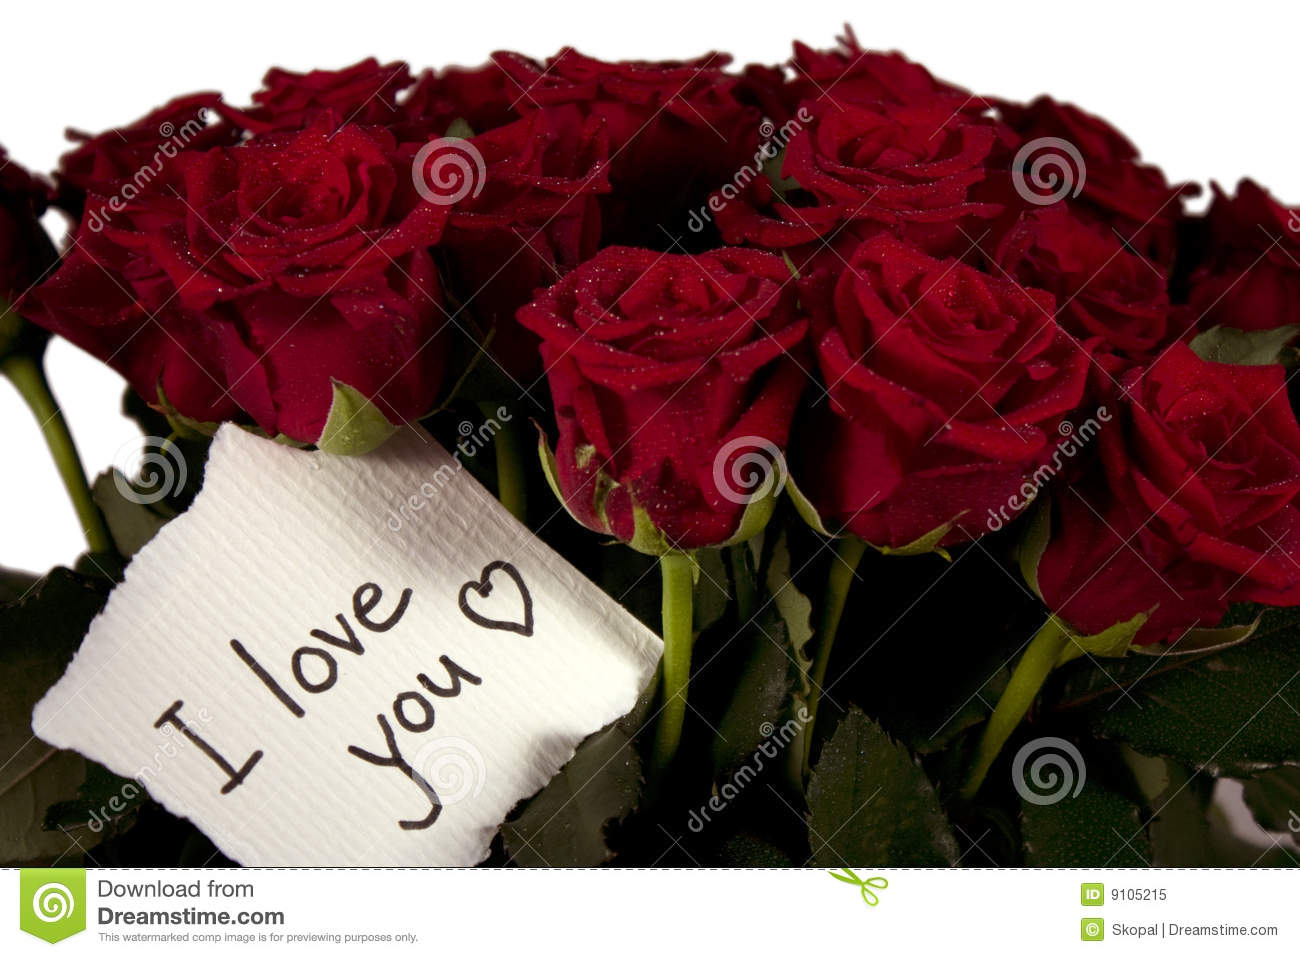 bunch of roses in glass vase with note - I love you.